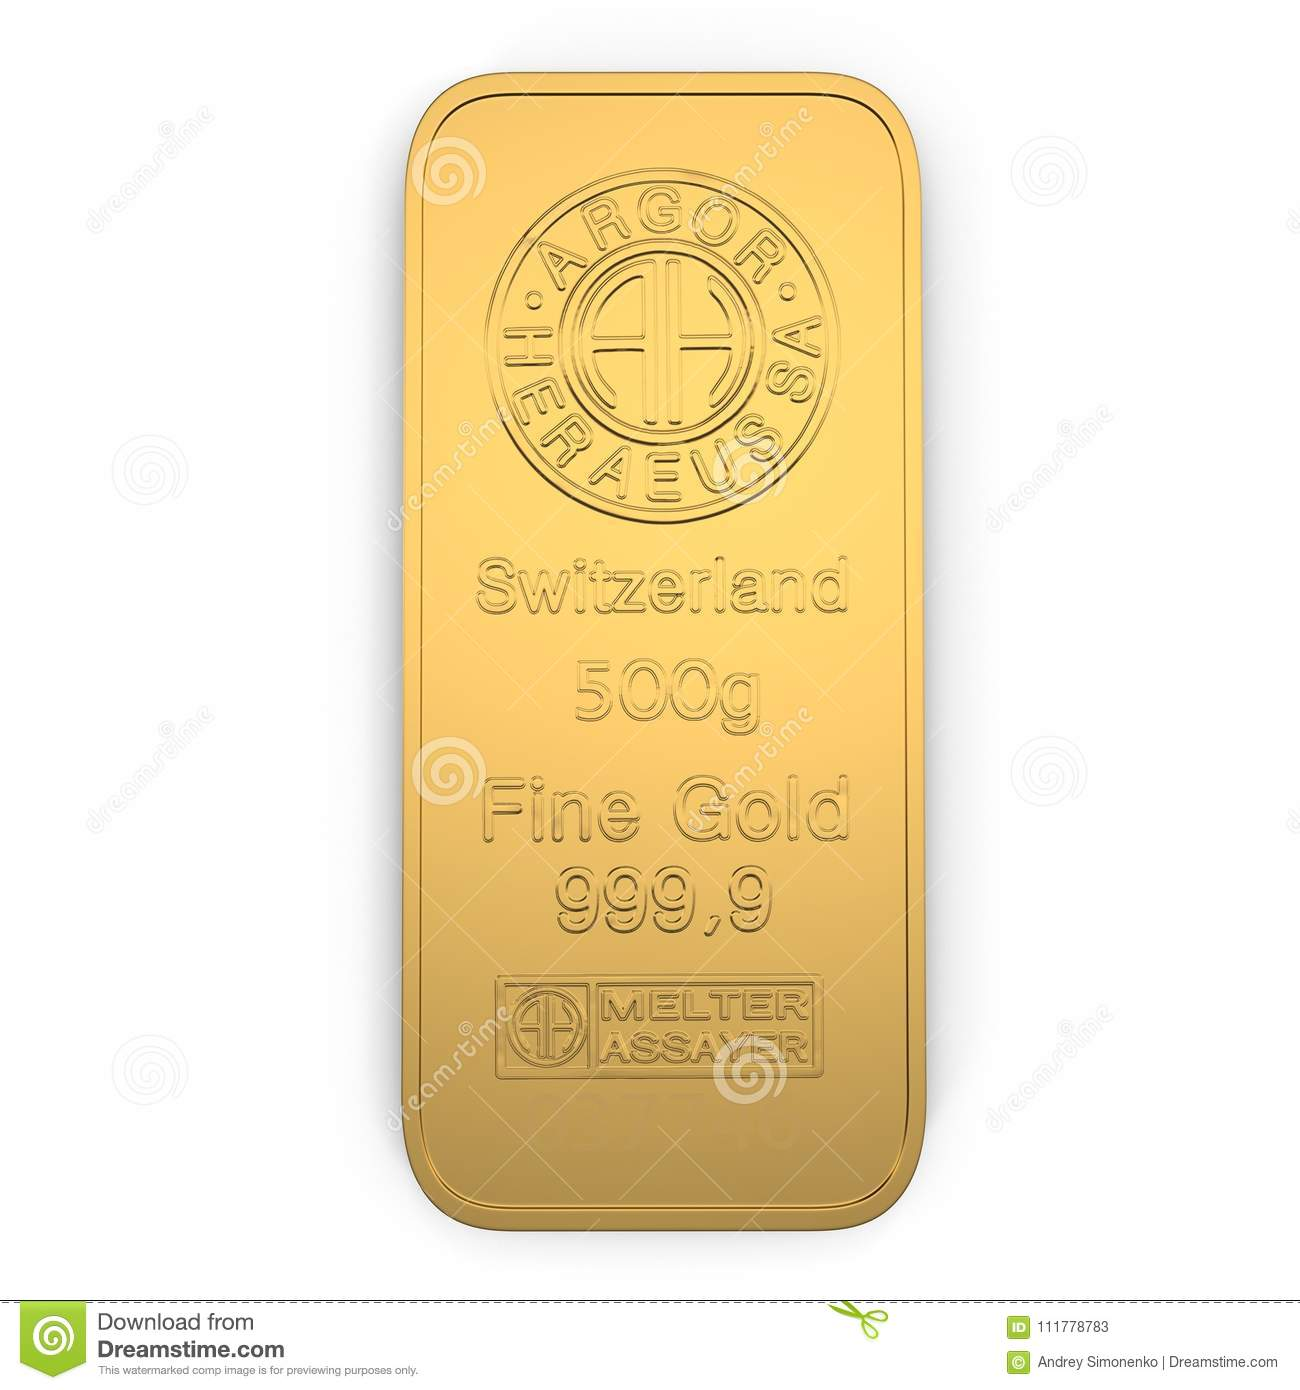 Gold bar 500g isolated on white. Top view. 3D illustration